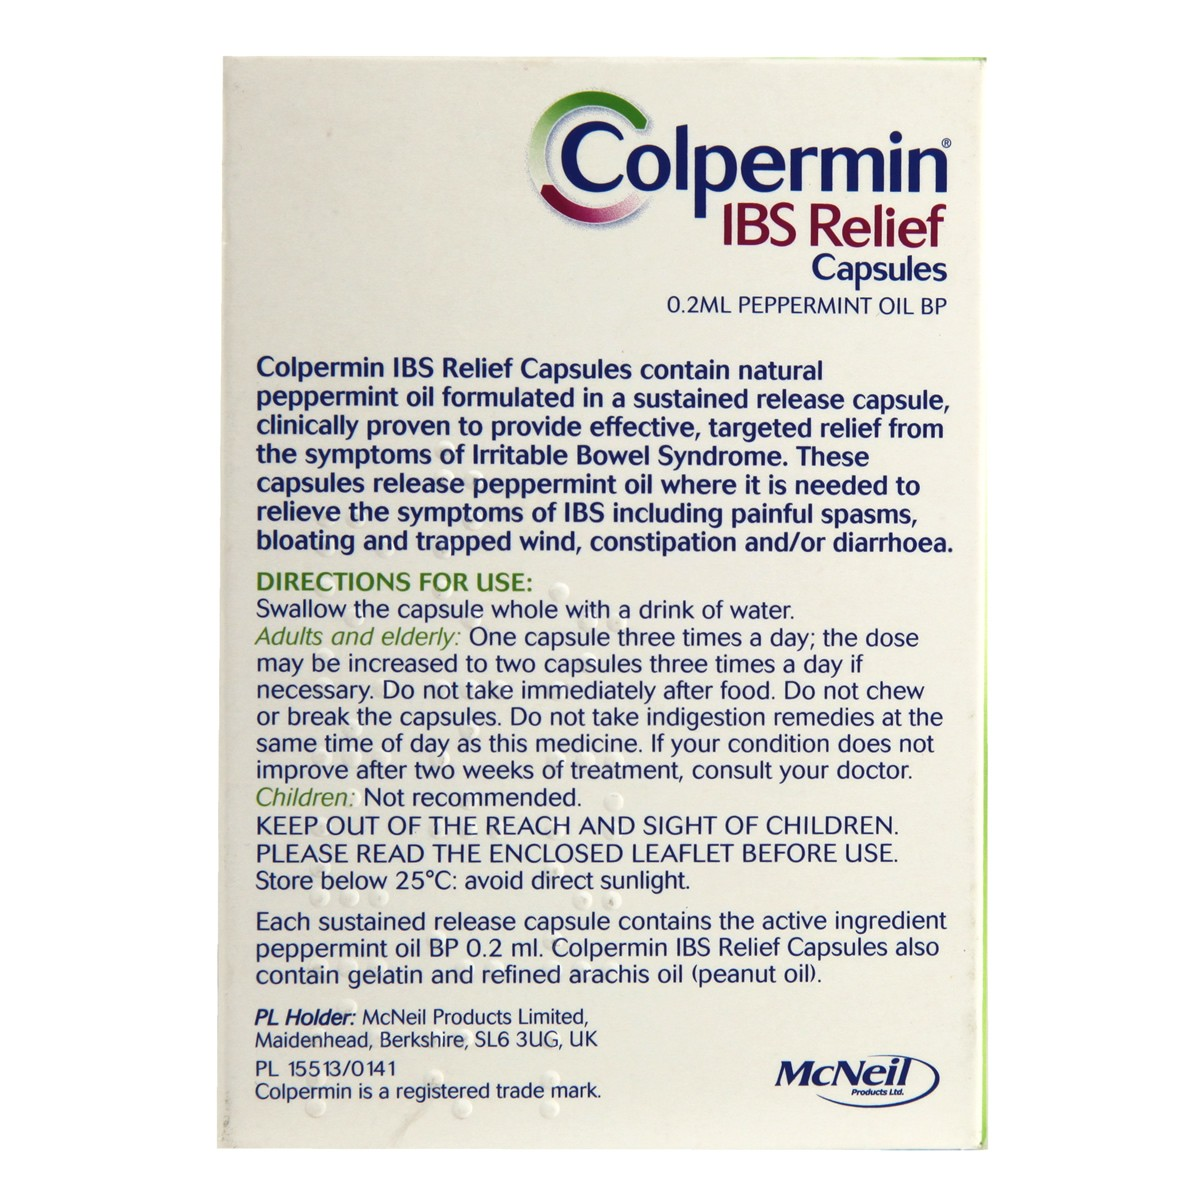 Colpermin IBS Relief Capsules